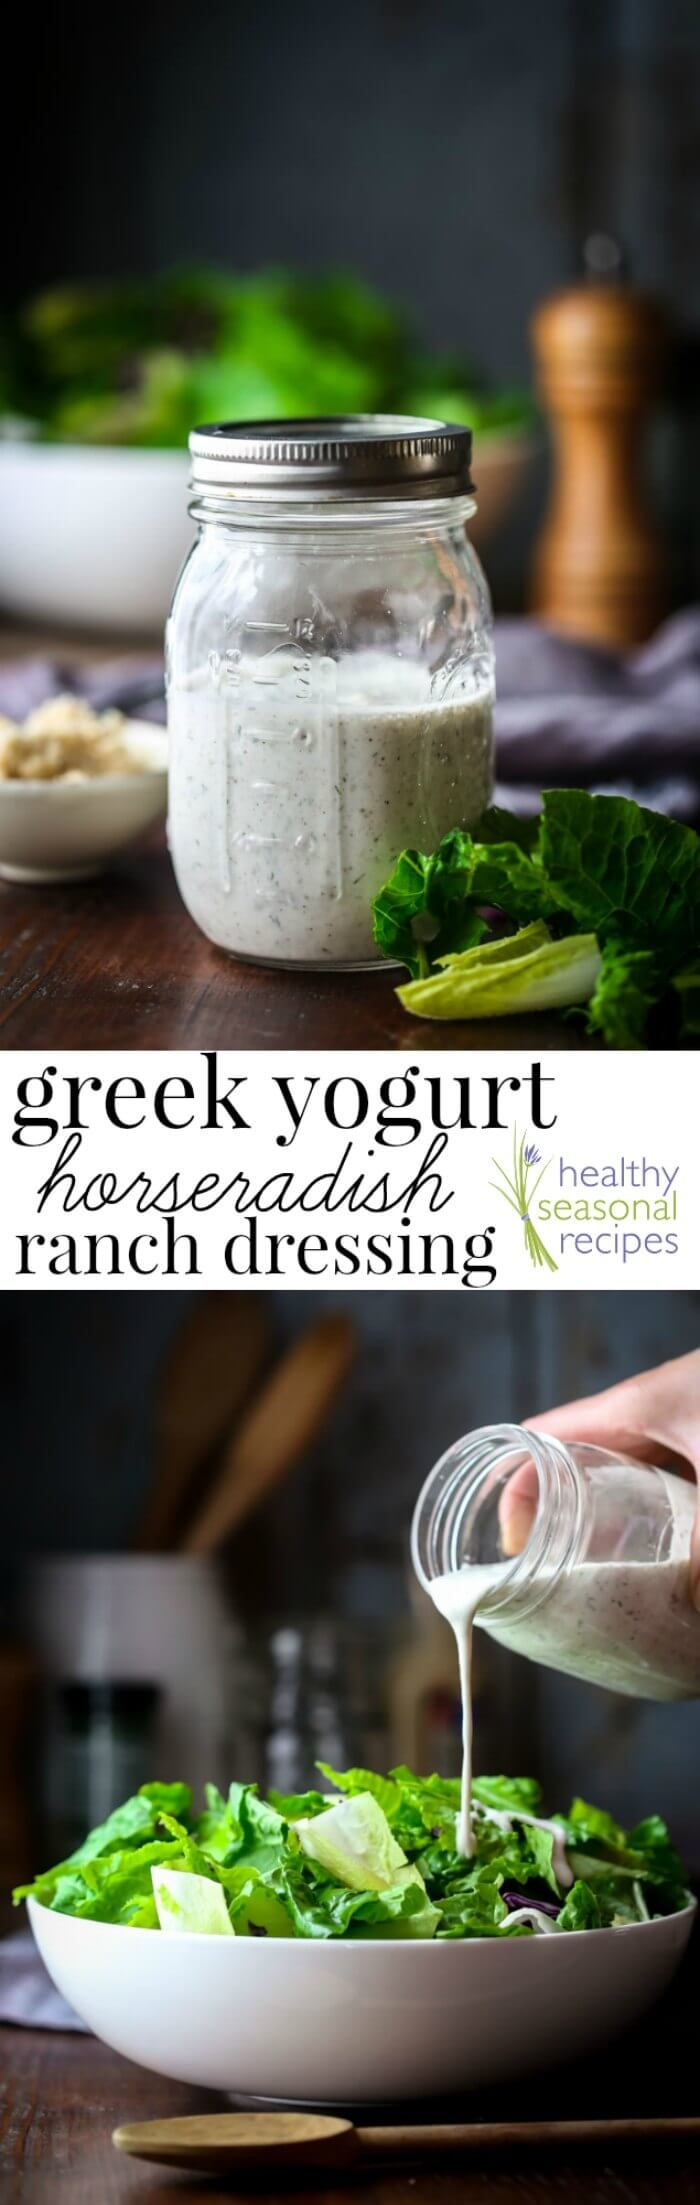 Blog post at Healthy Seasonal Recipes : Ranch Salad Dressing made with Greek Yogurt and horseradish Naturally gluten free and only 47 calories per serving!    I'm super excited[..]